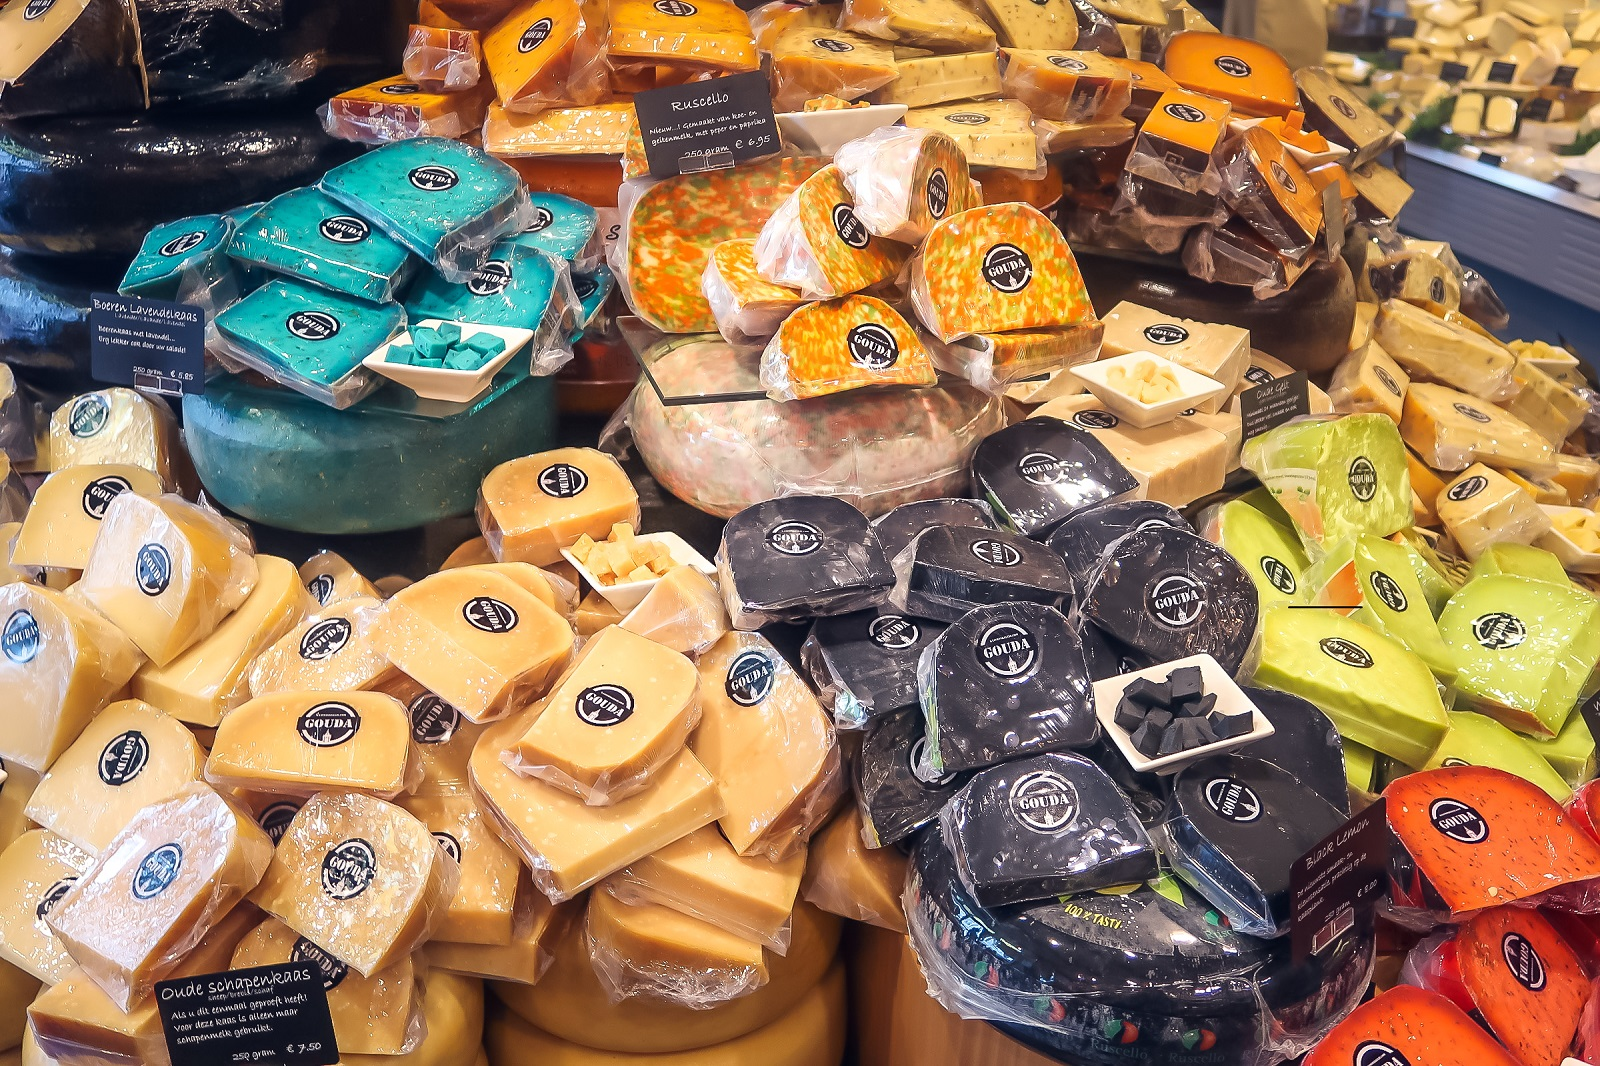 Explore the delightful and colourful offering of cheese on display at Kaaswinkeltje Cheese Shop